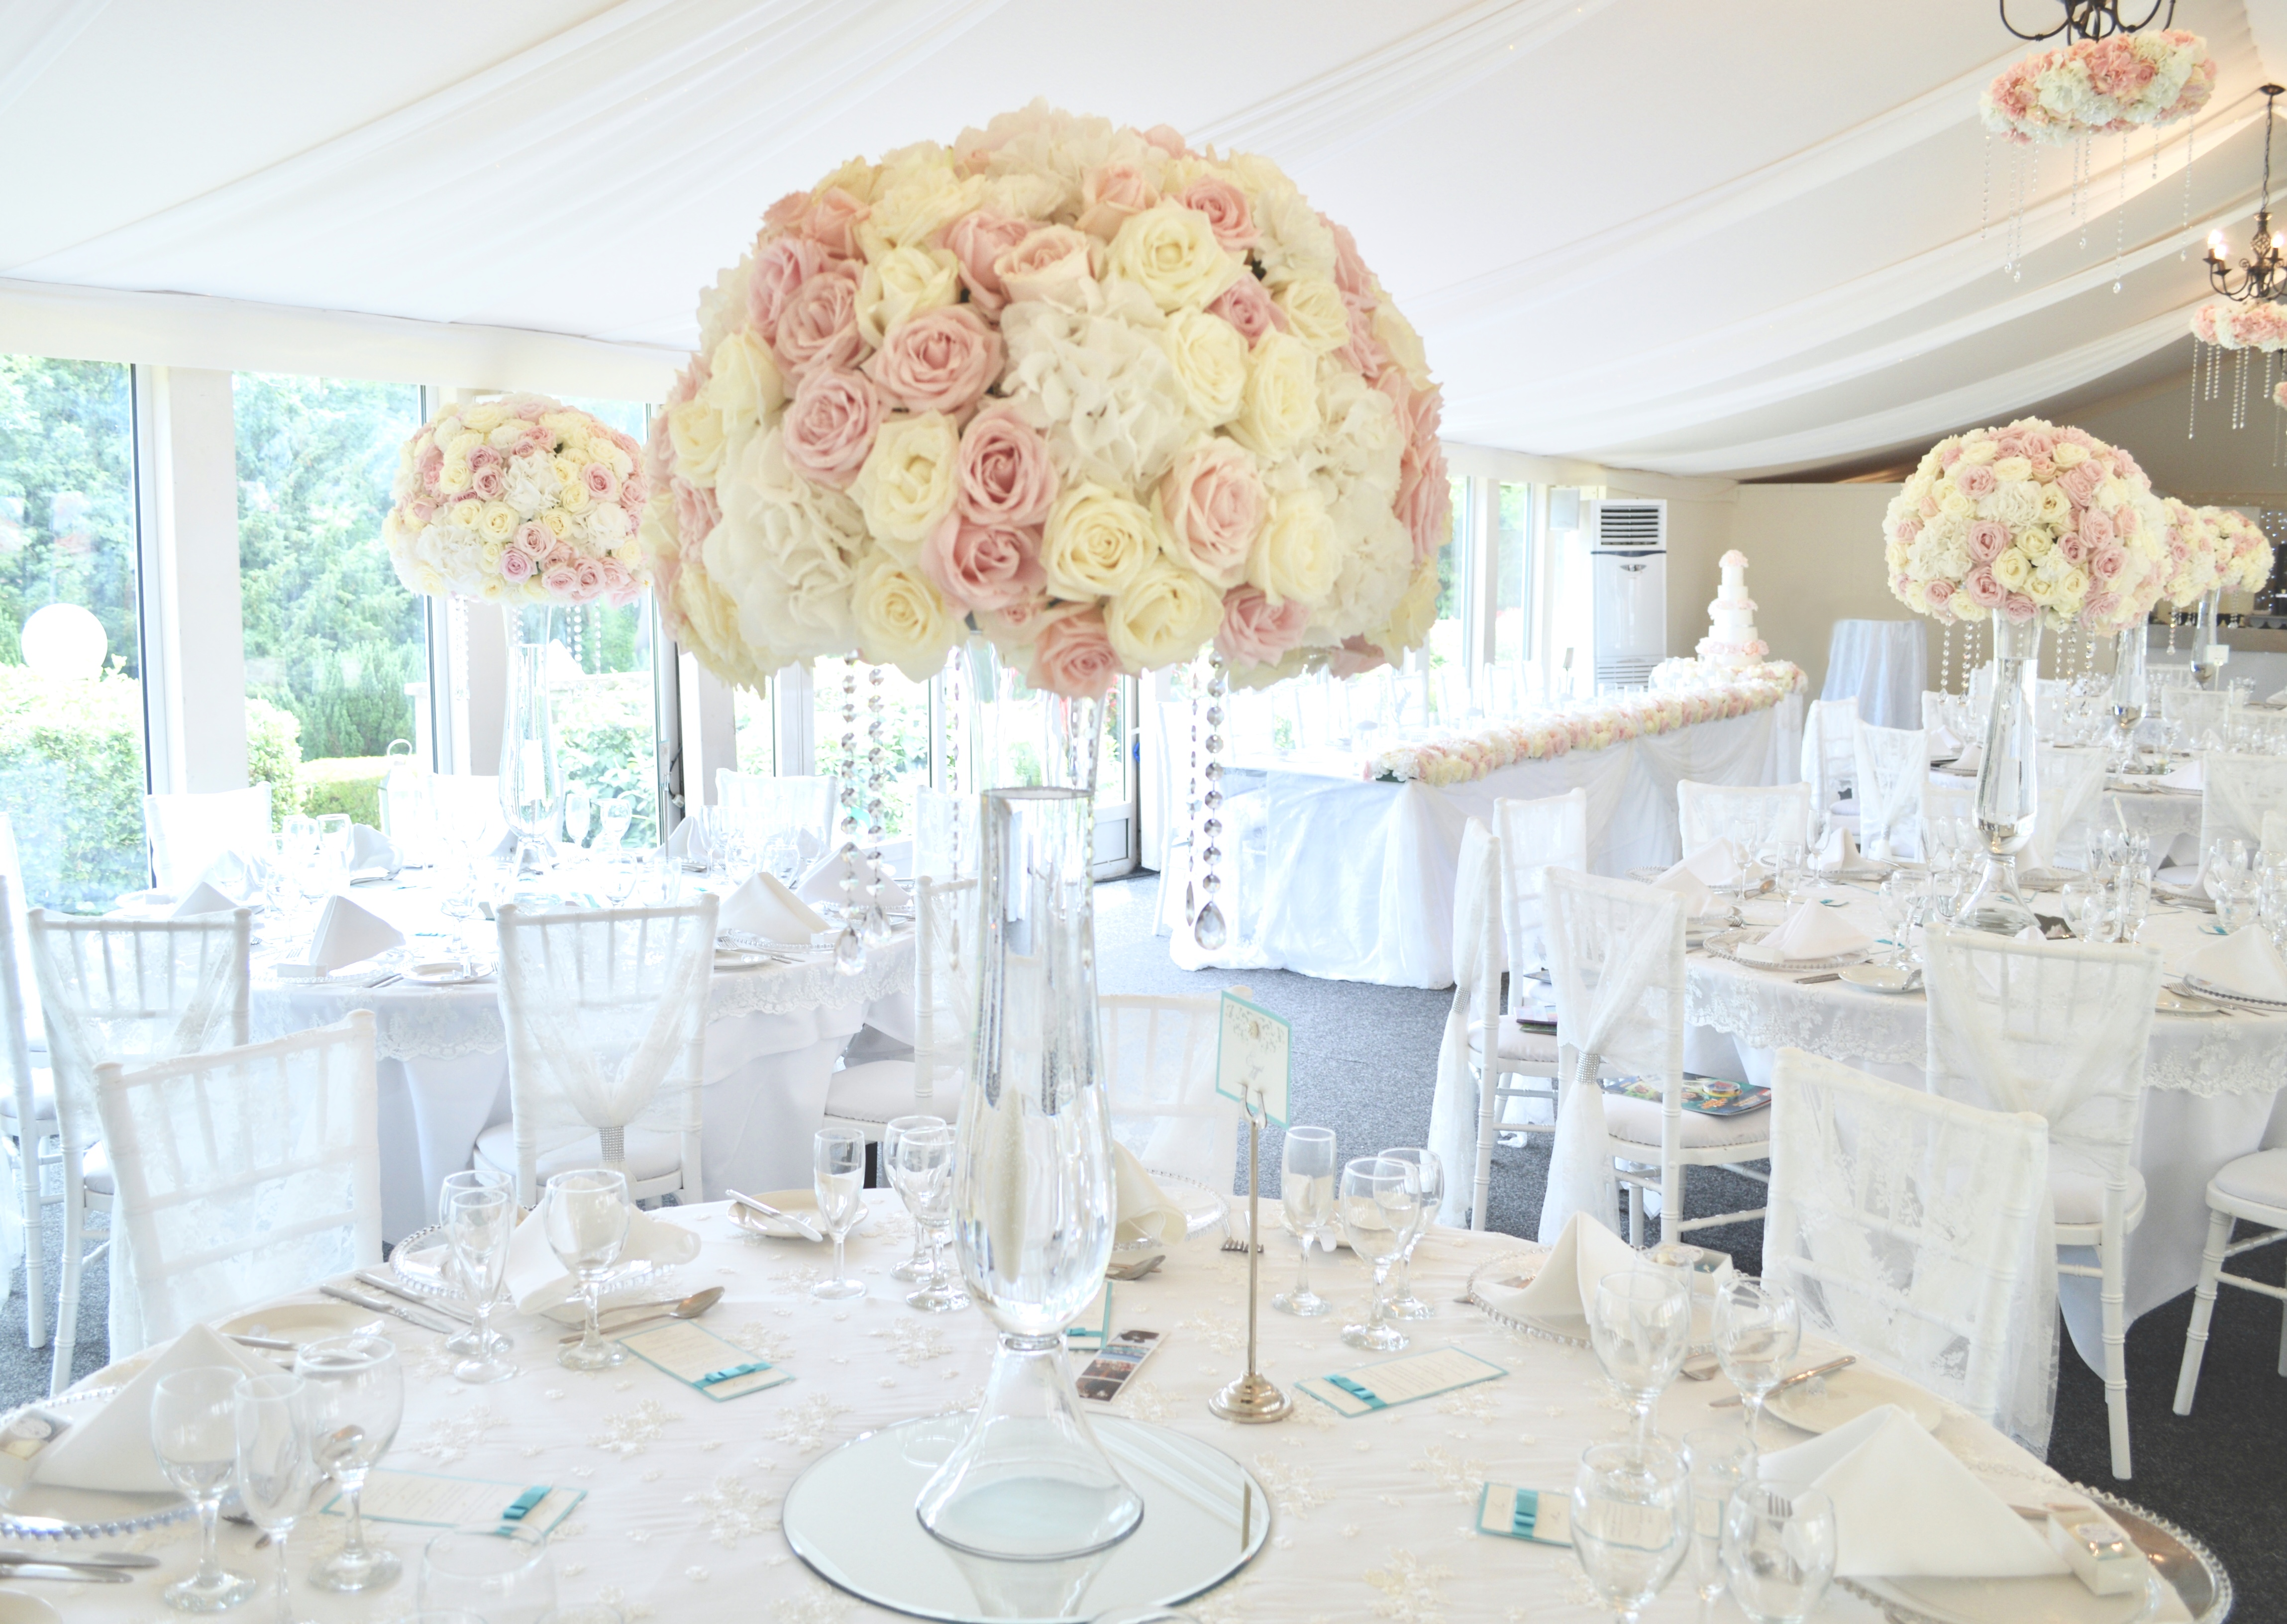 Luxury Blush Pink and White Wedding Flowers and Cake at Hunton Park Peony Hydrangeas and Roses Tall Vase Centrepieces with Crystals and Floral Chandelier Cherie Kelly Cake London 4